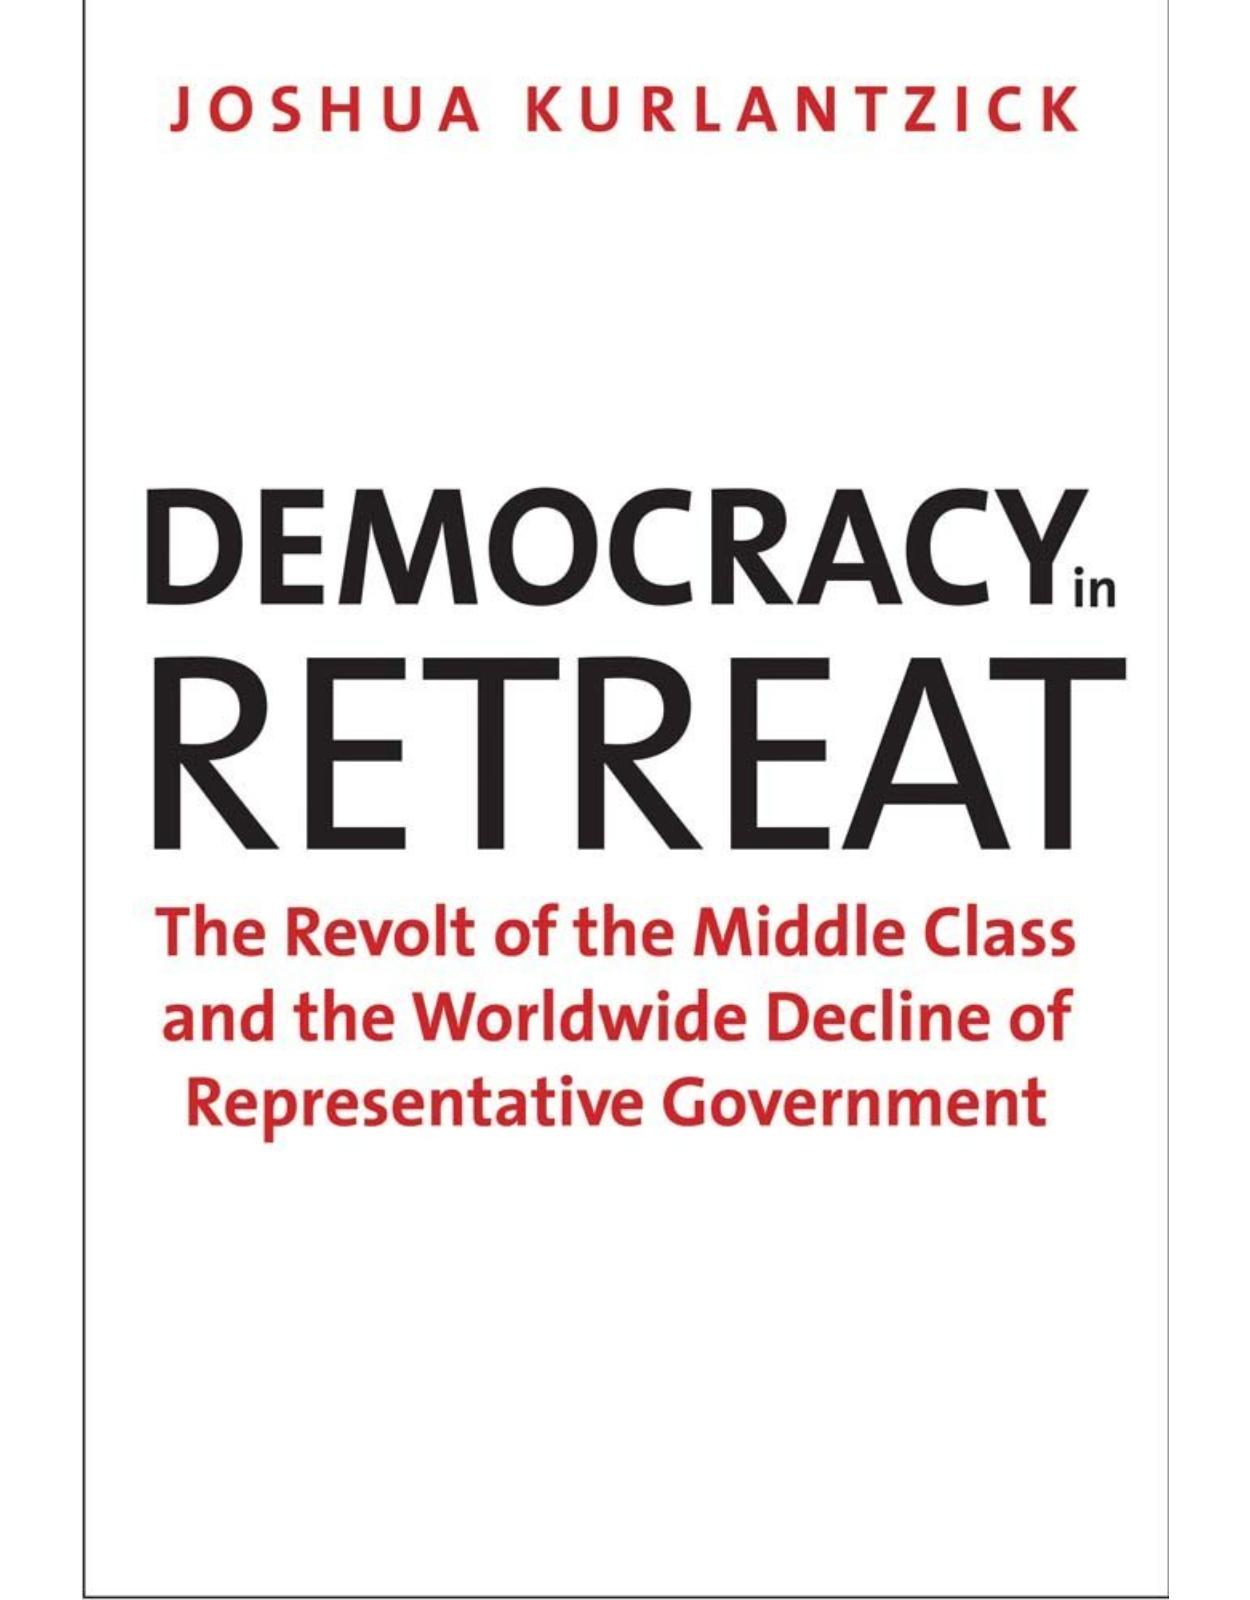 Democracy in Retreat. The Revolt of the Middle Class and the Worldwide Decline of Representative Government